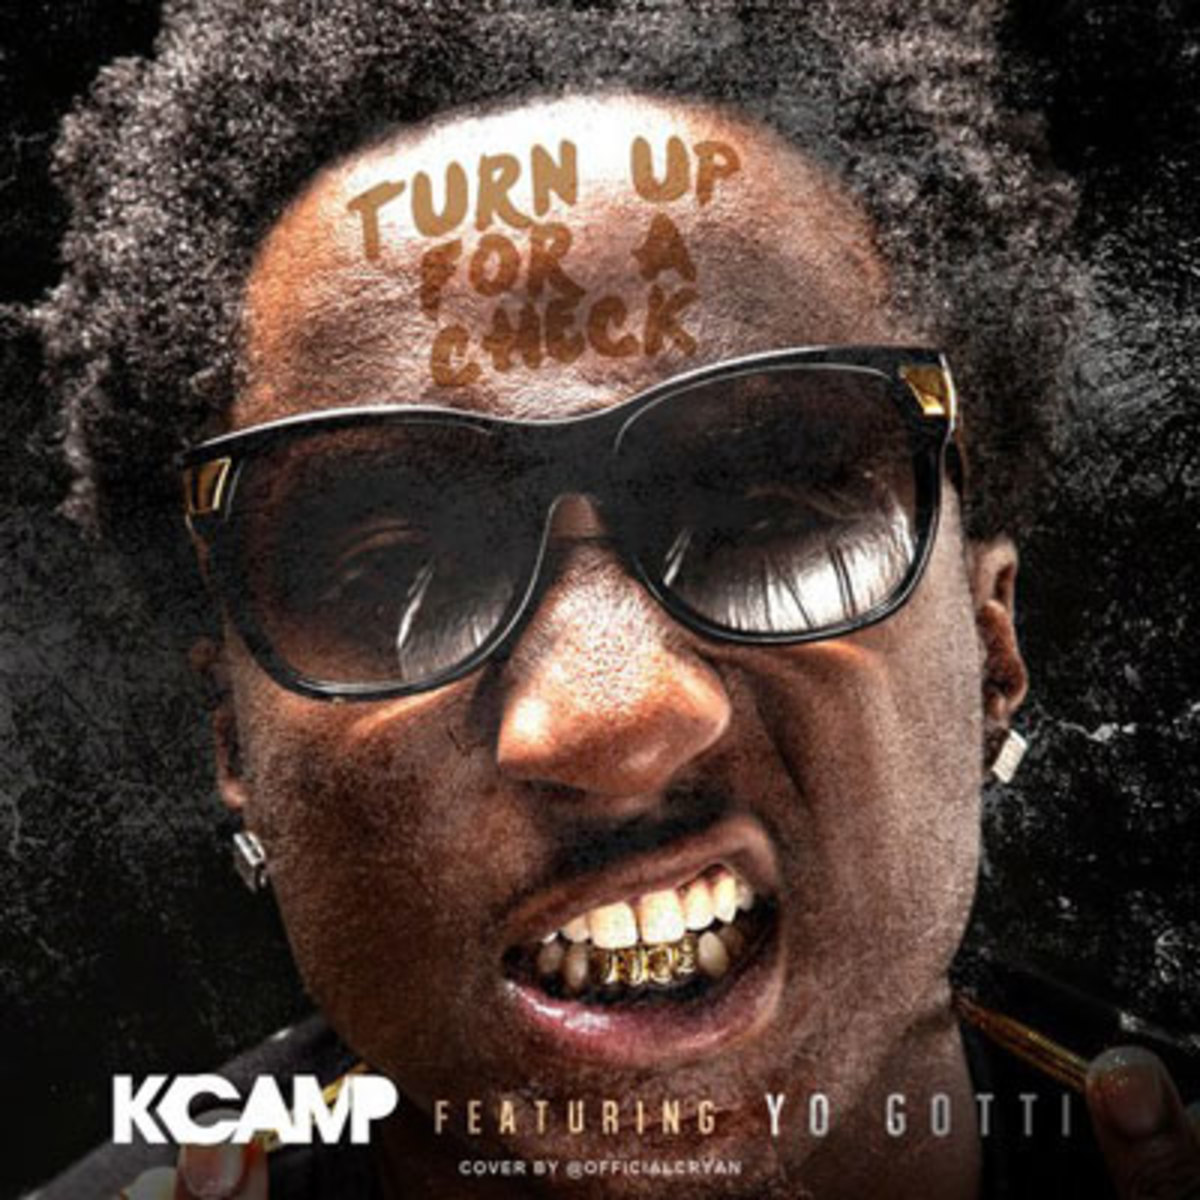 kcamp-turnupcheck.jpg